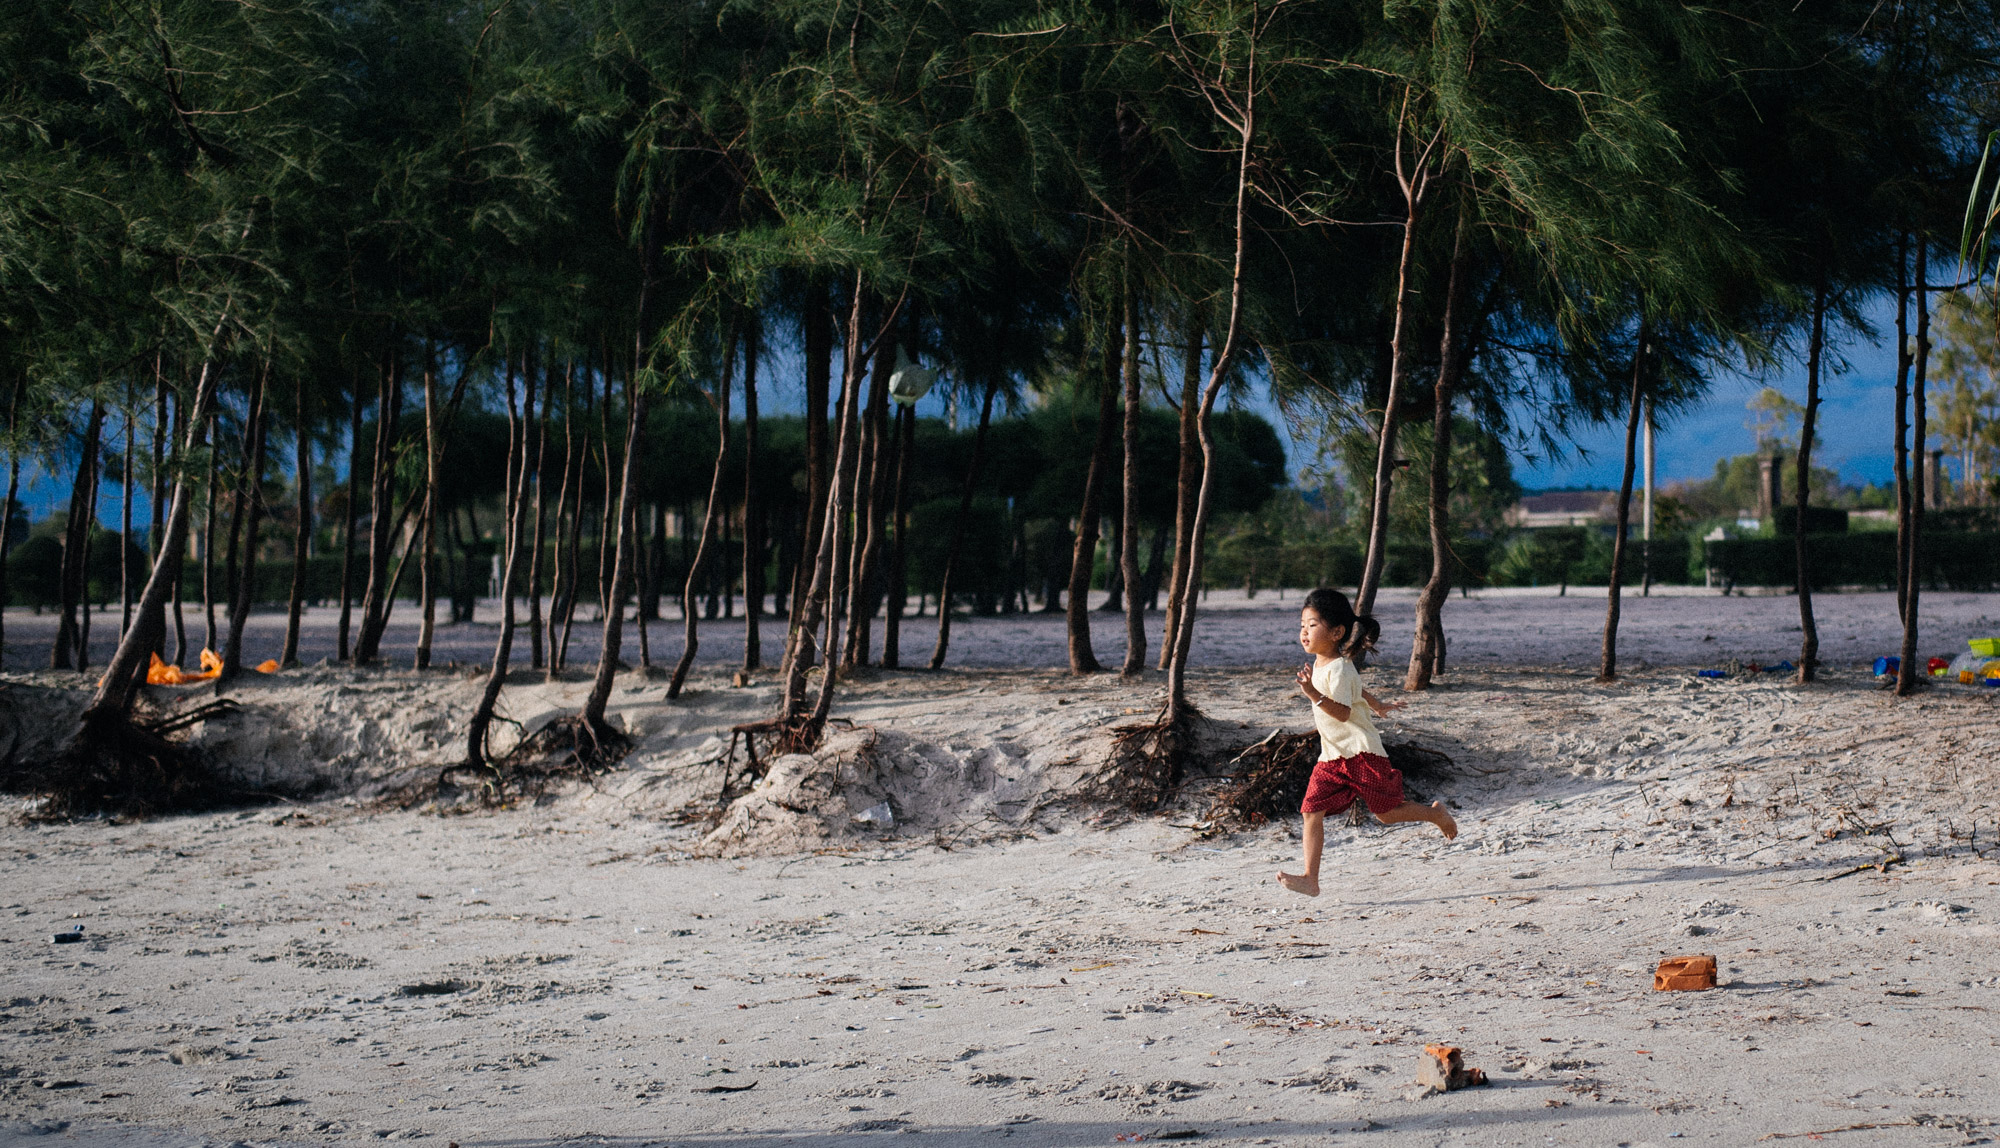 Chinese tourist rushes to the beach to play.